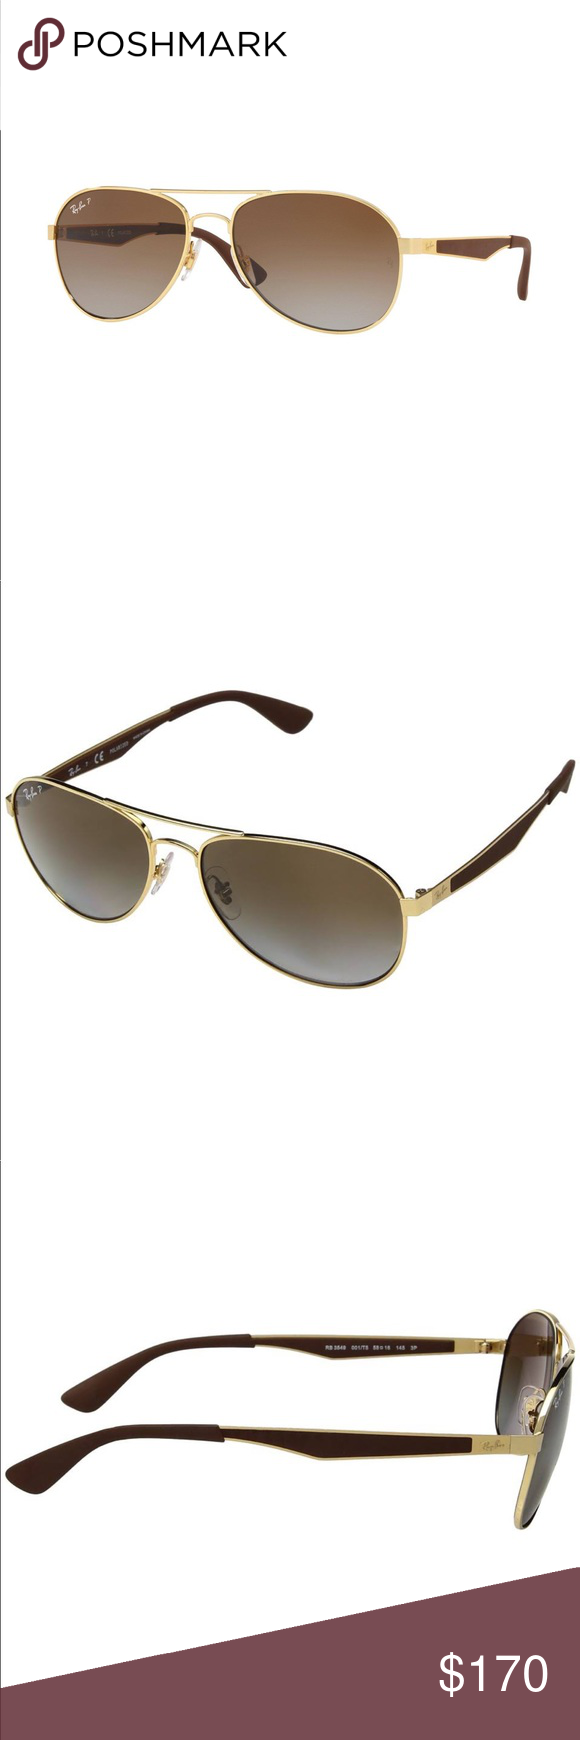 6c180cf2fb7 Ray Ban Polarized RB3549 001 T5 5 Ray Ban Polarized Brown Gradient Aviator  Unisex Sunglasses